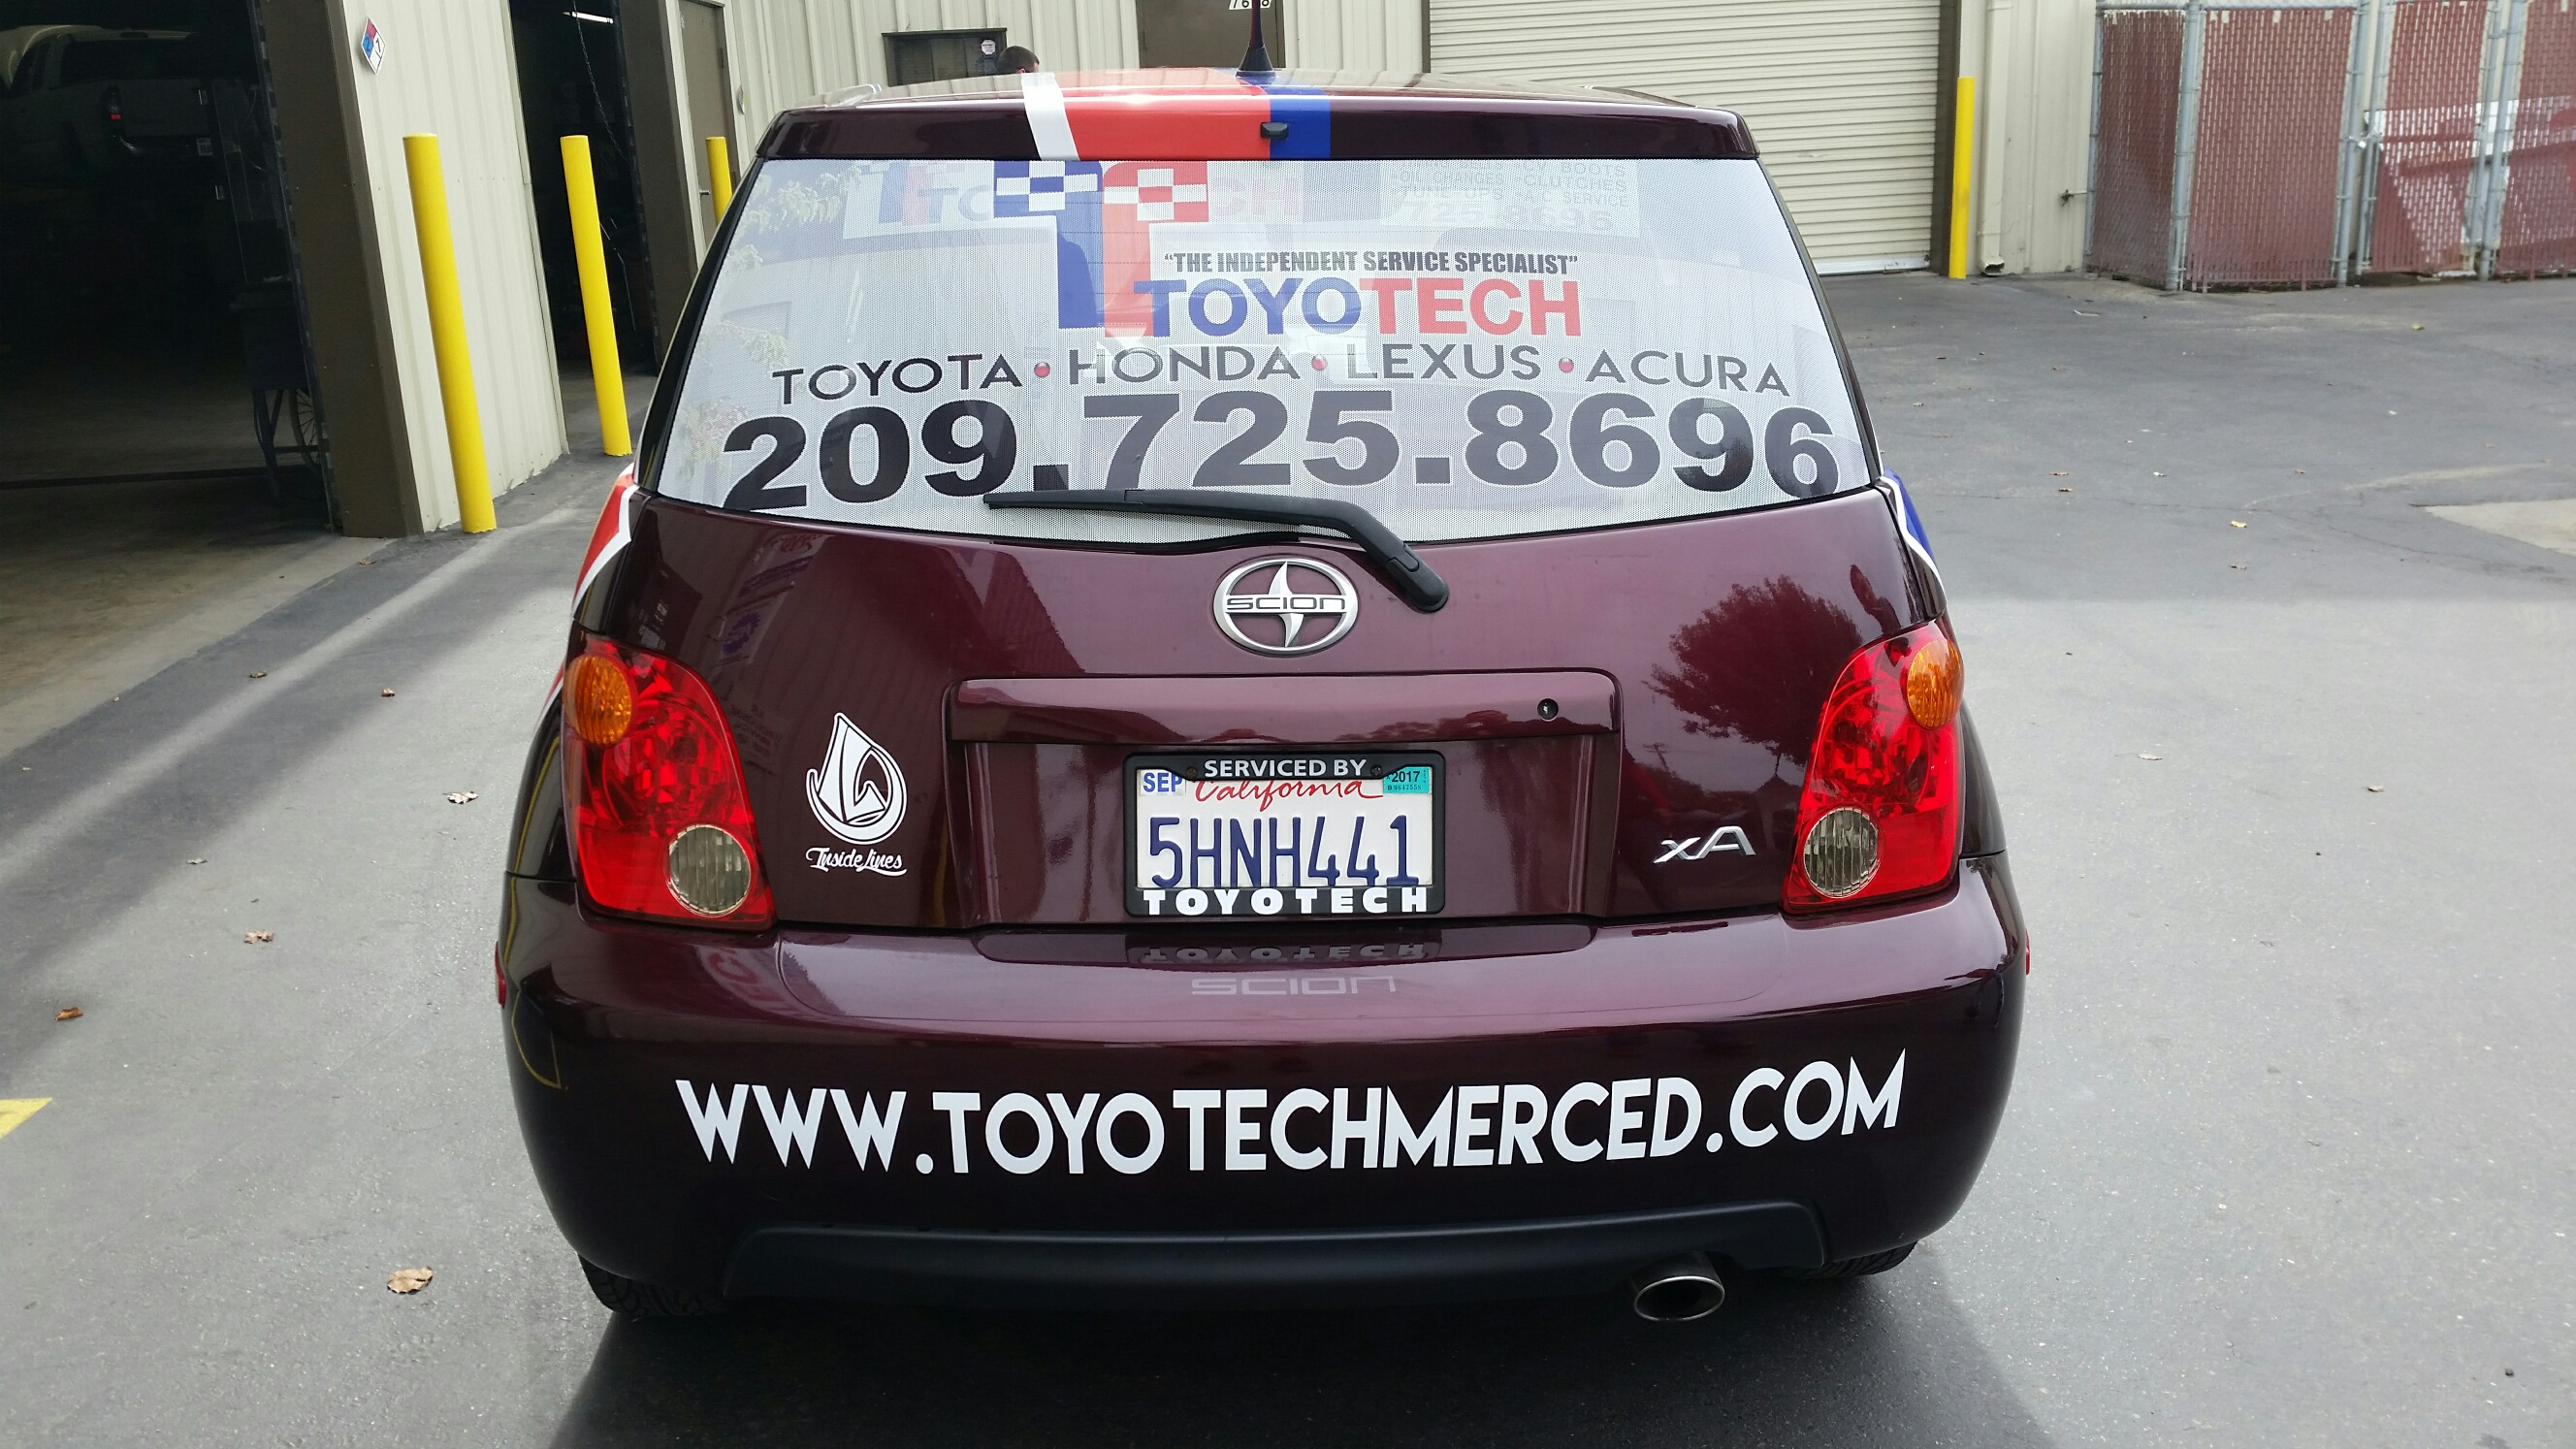 Toyotech image 2